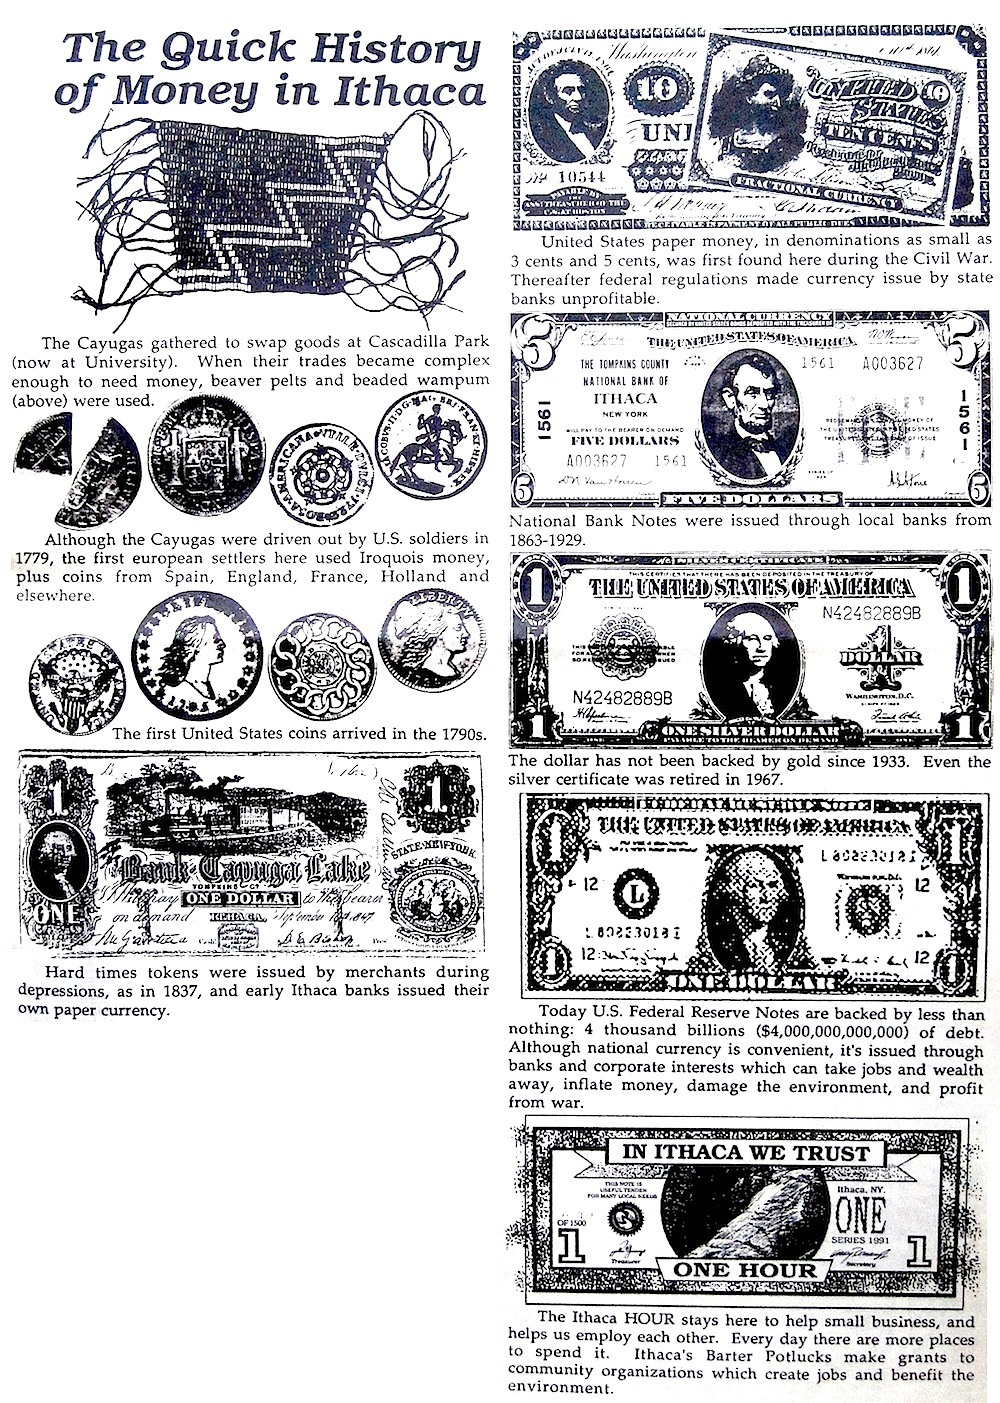 History of Money in Ithaca